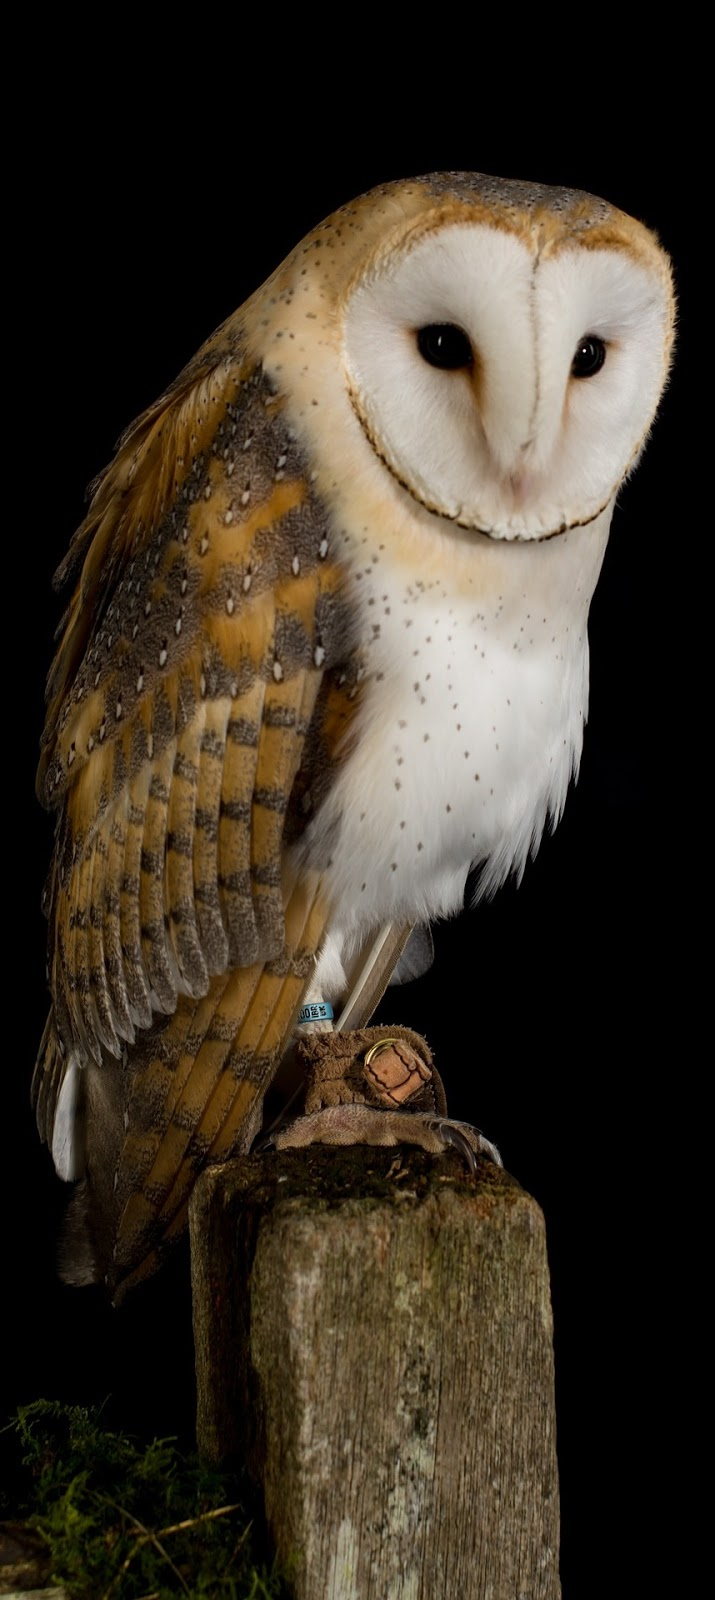 Facts About Barn Owls - BARN